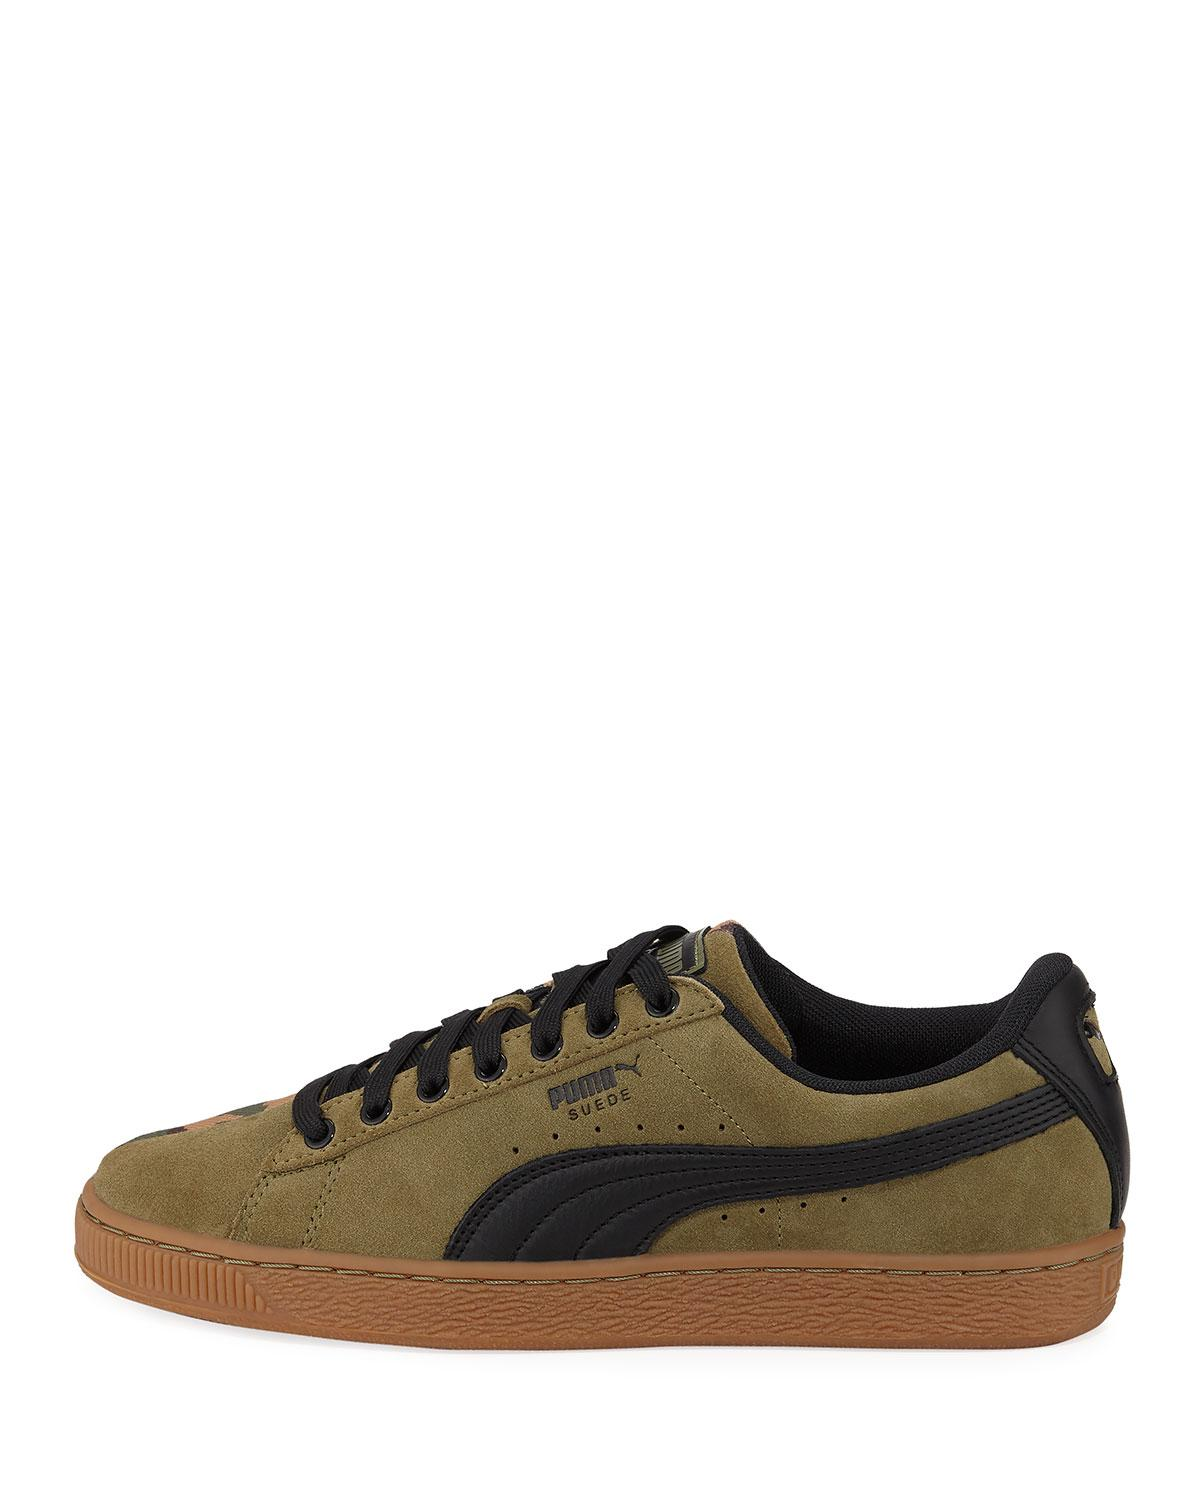 Lyst - PUMA Men s Suede Sp Low-top Camo Sneakers in Green for Men - Save 7% 89ad6b9d2